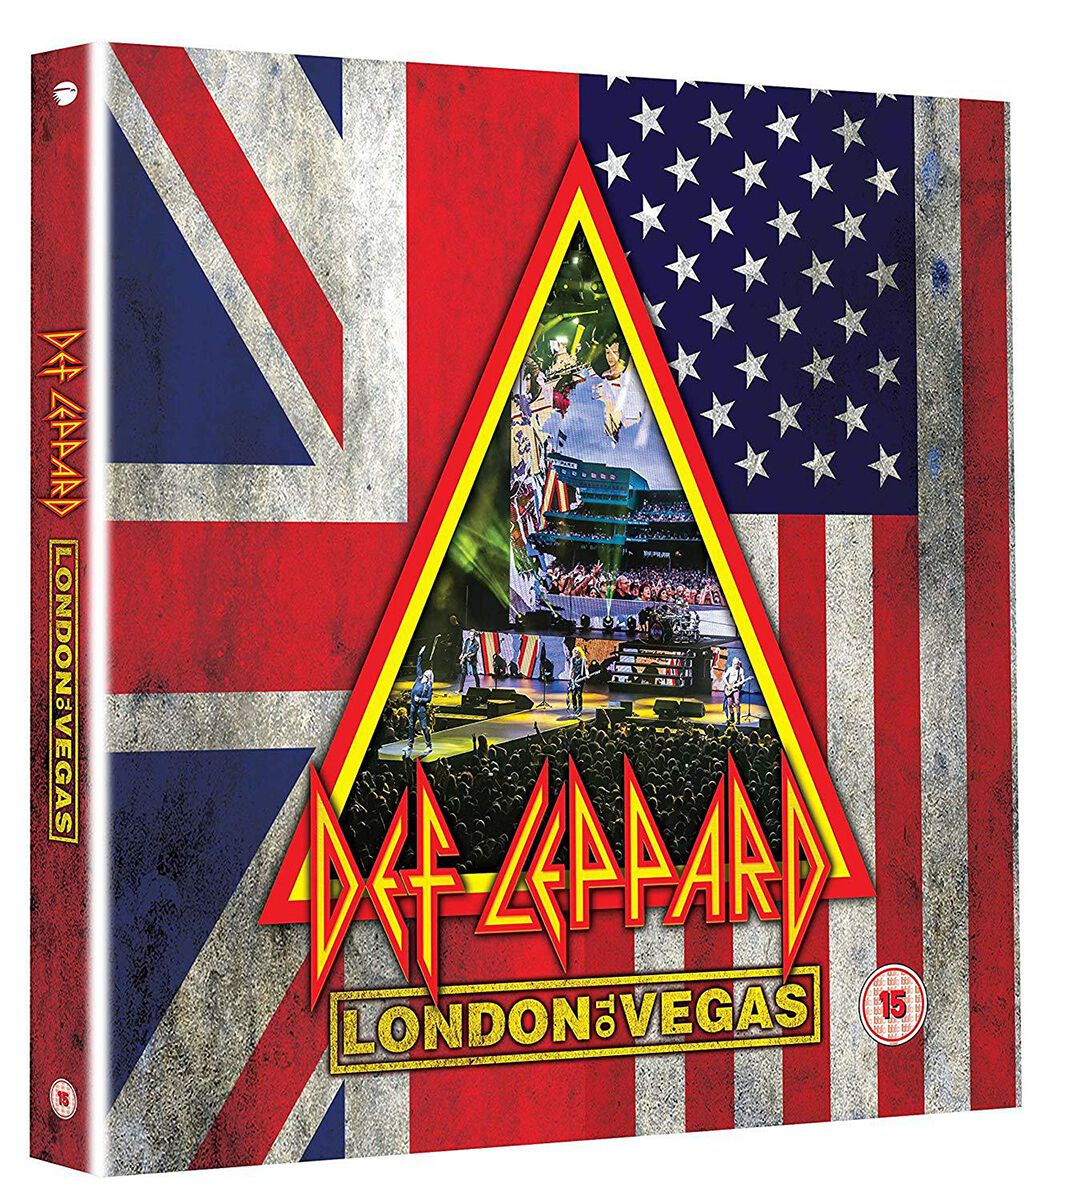 Image of Def Leppard London to Vegas 2-Blu-ray & 4-CD Standard